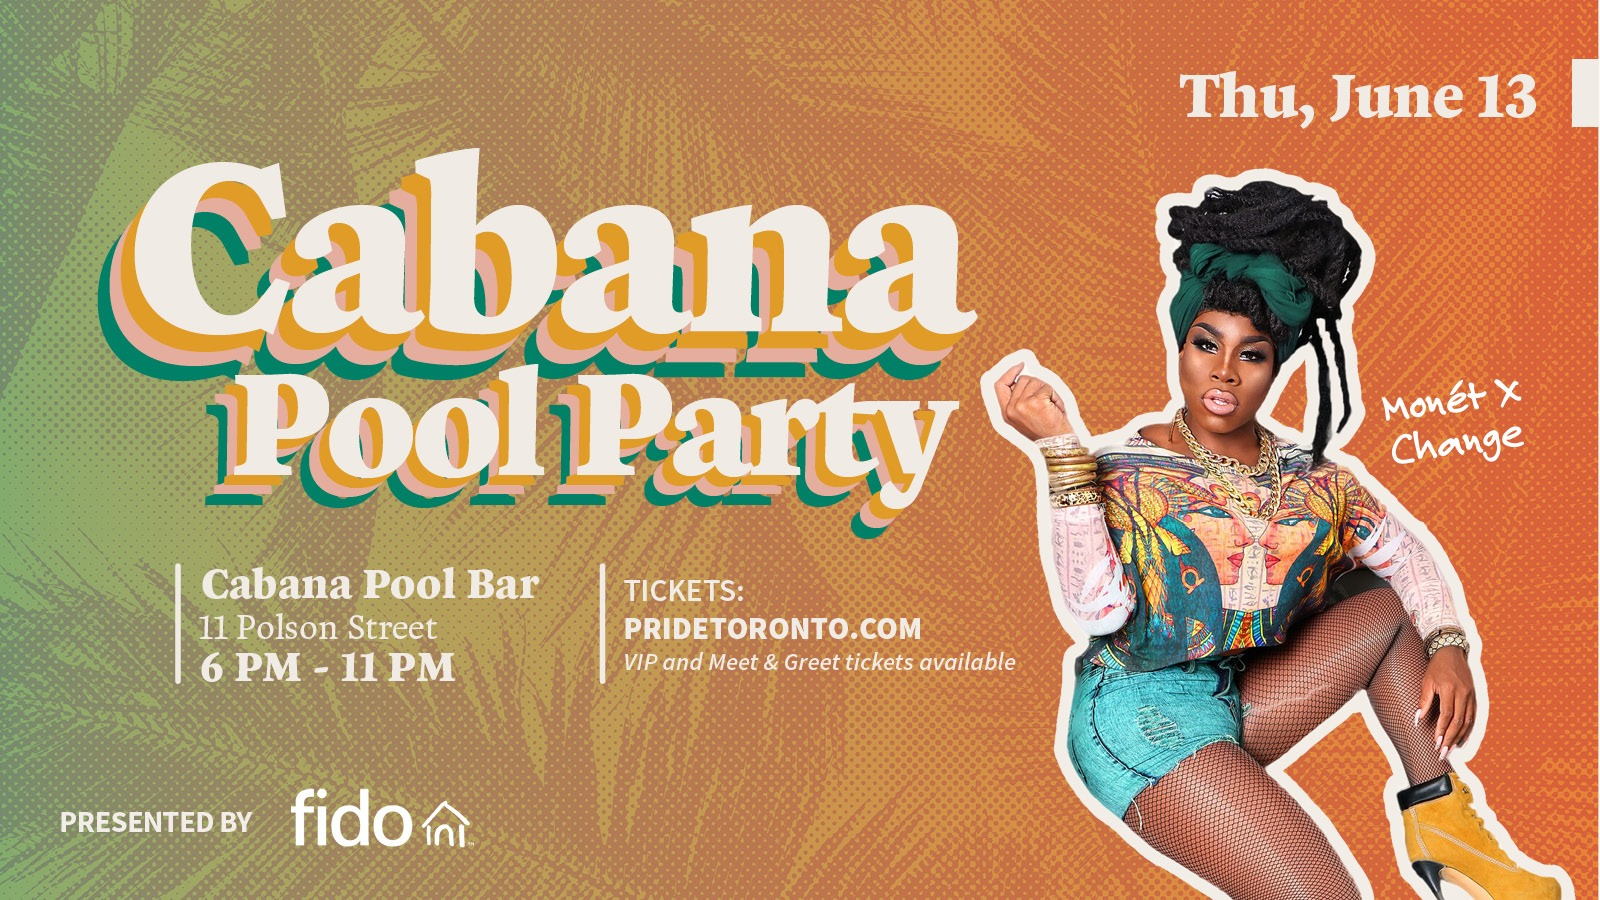 QueerEvents.ca - Toronto event listing - Cabana Pool Party Event banner